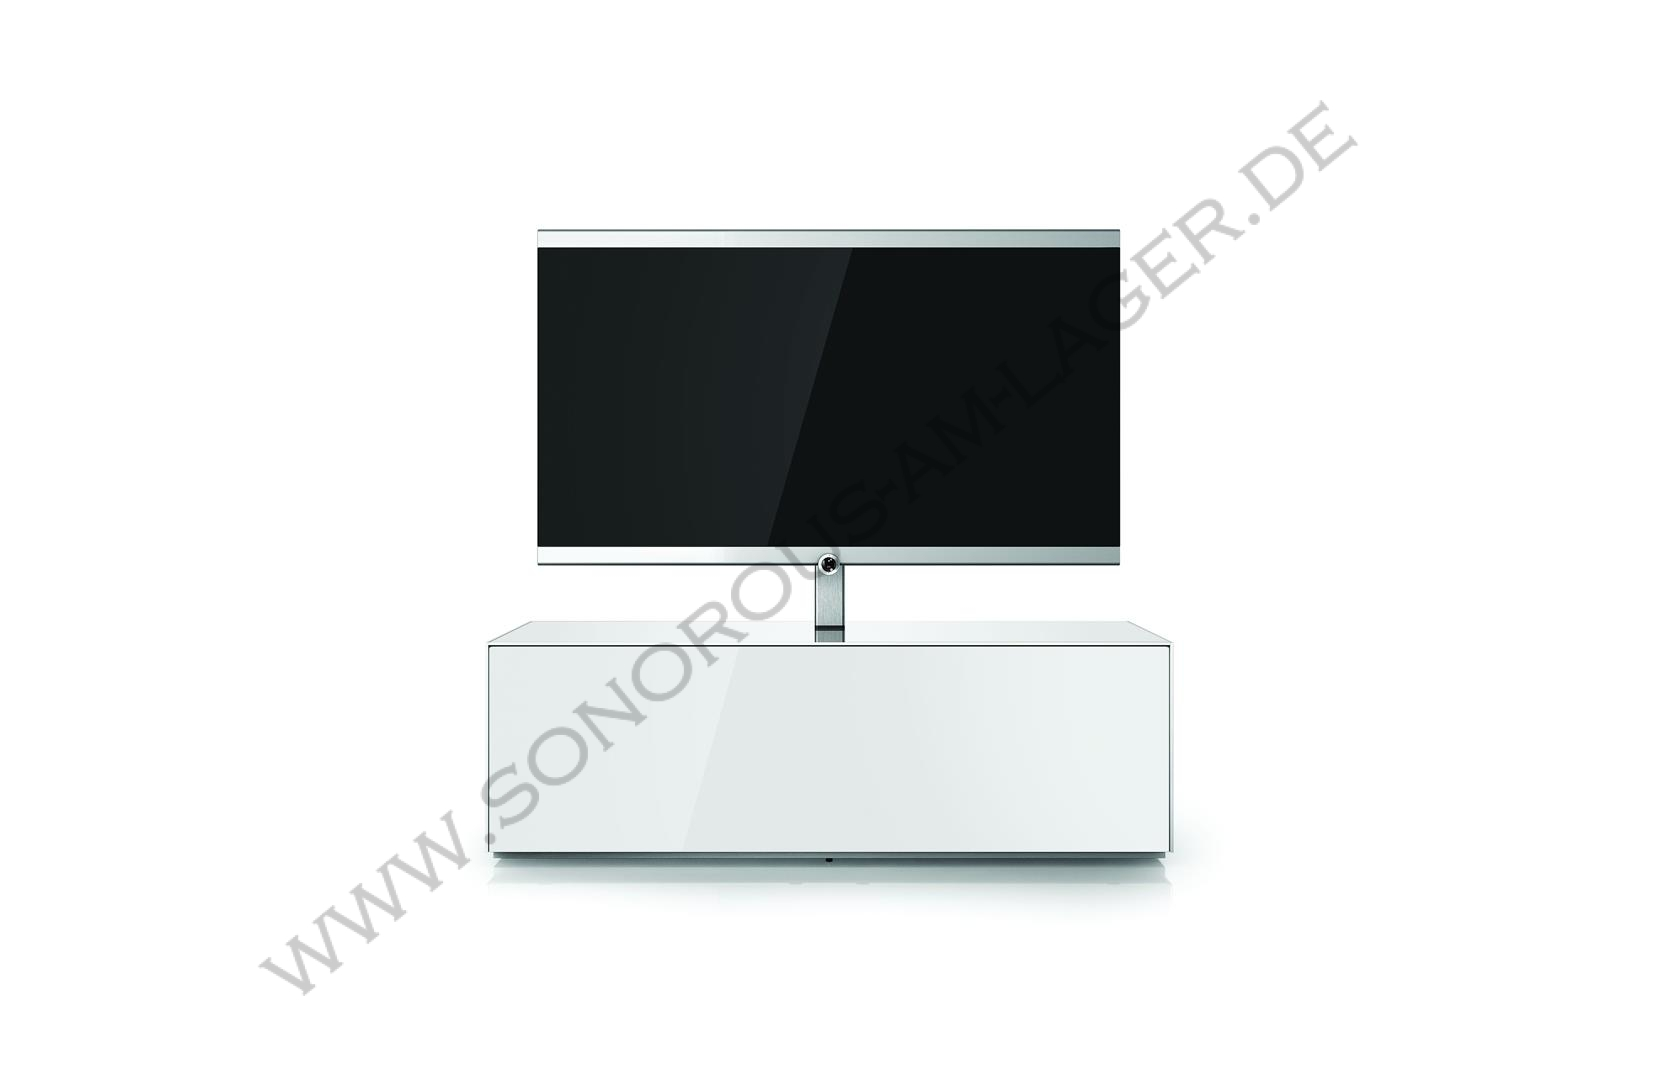 Meuble Tv Sonorous Sonorous Tv Möbel Tv Sideboard Sonorous Ex10 F Wht 8 B Ex10 F